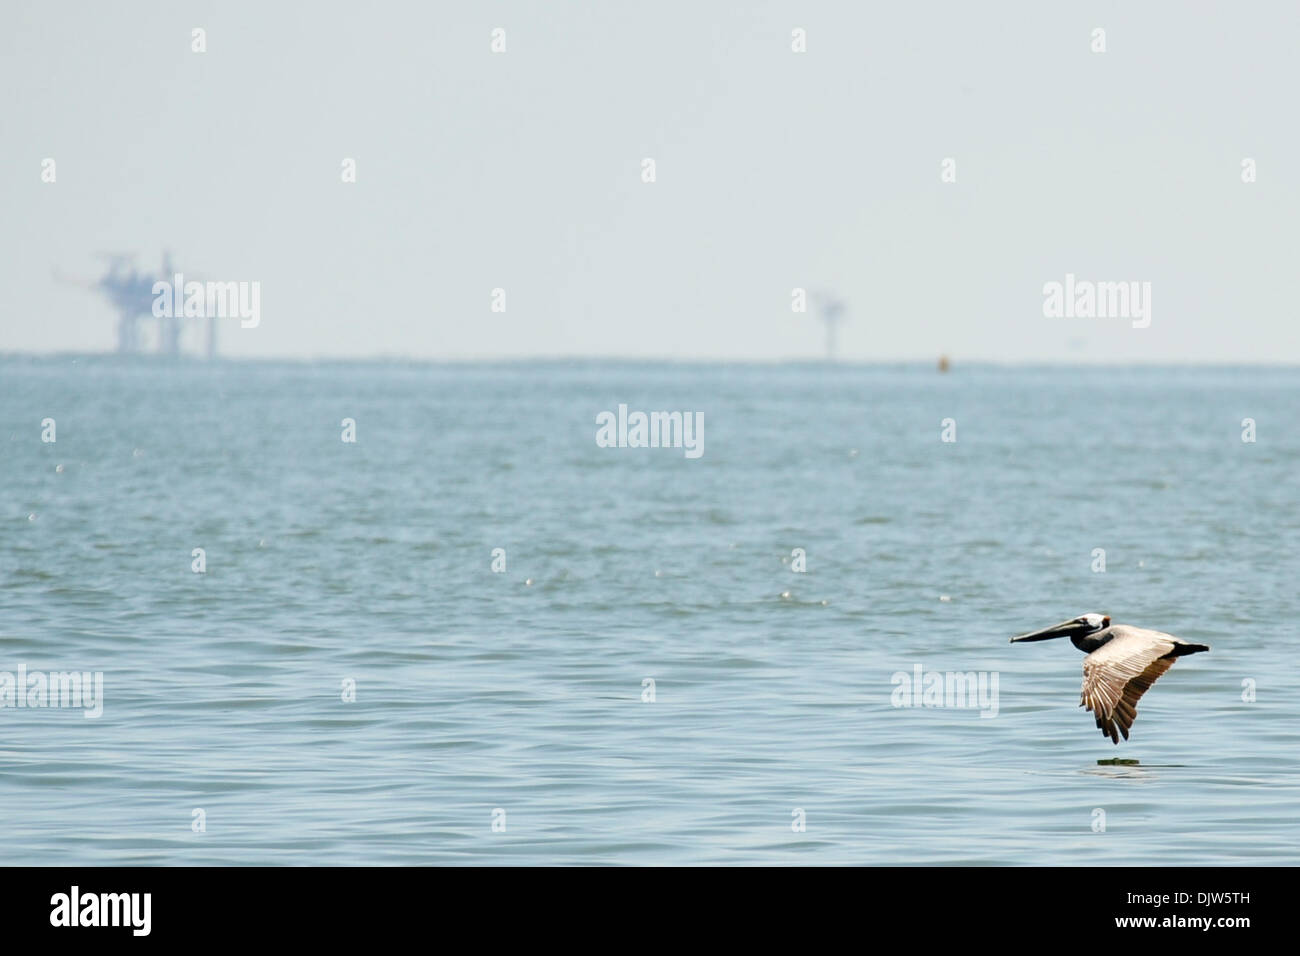 A brown pelican hovers above the waters of the Gulf of Mexico, with working oil rigs in the background.  Estimates to date make the BP oil spill the largest  ecological disaster in US history. (Credit Image: © Stacy Revere/Southcreek Global/ZUMApress.com) - Stock Image